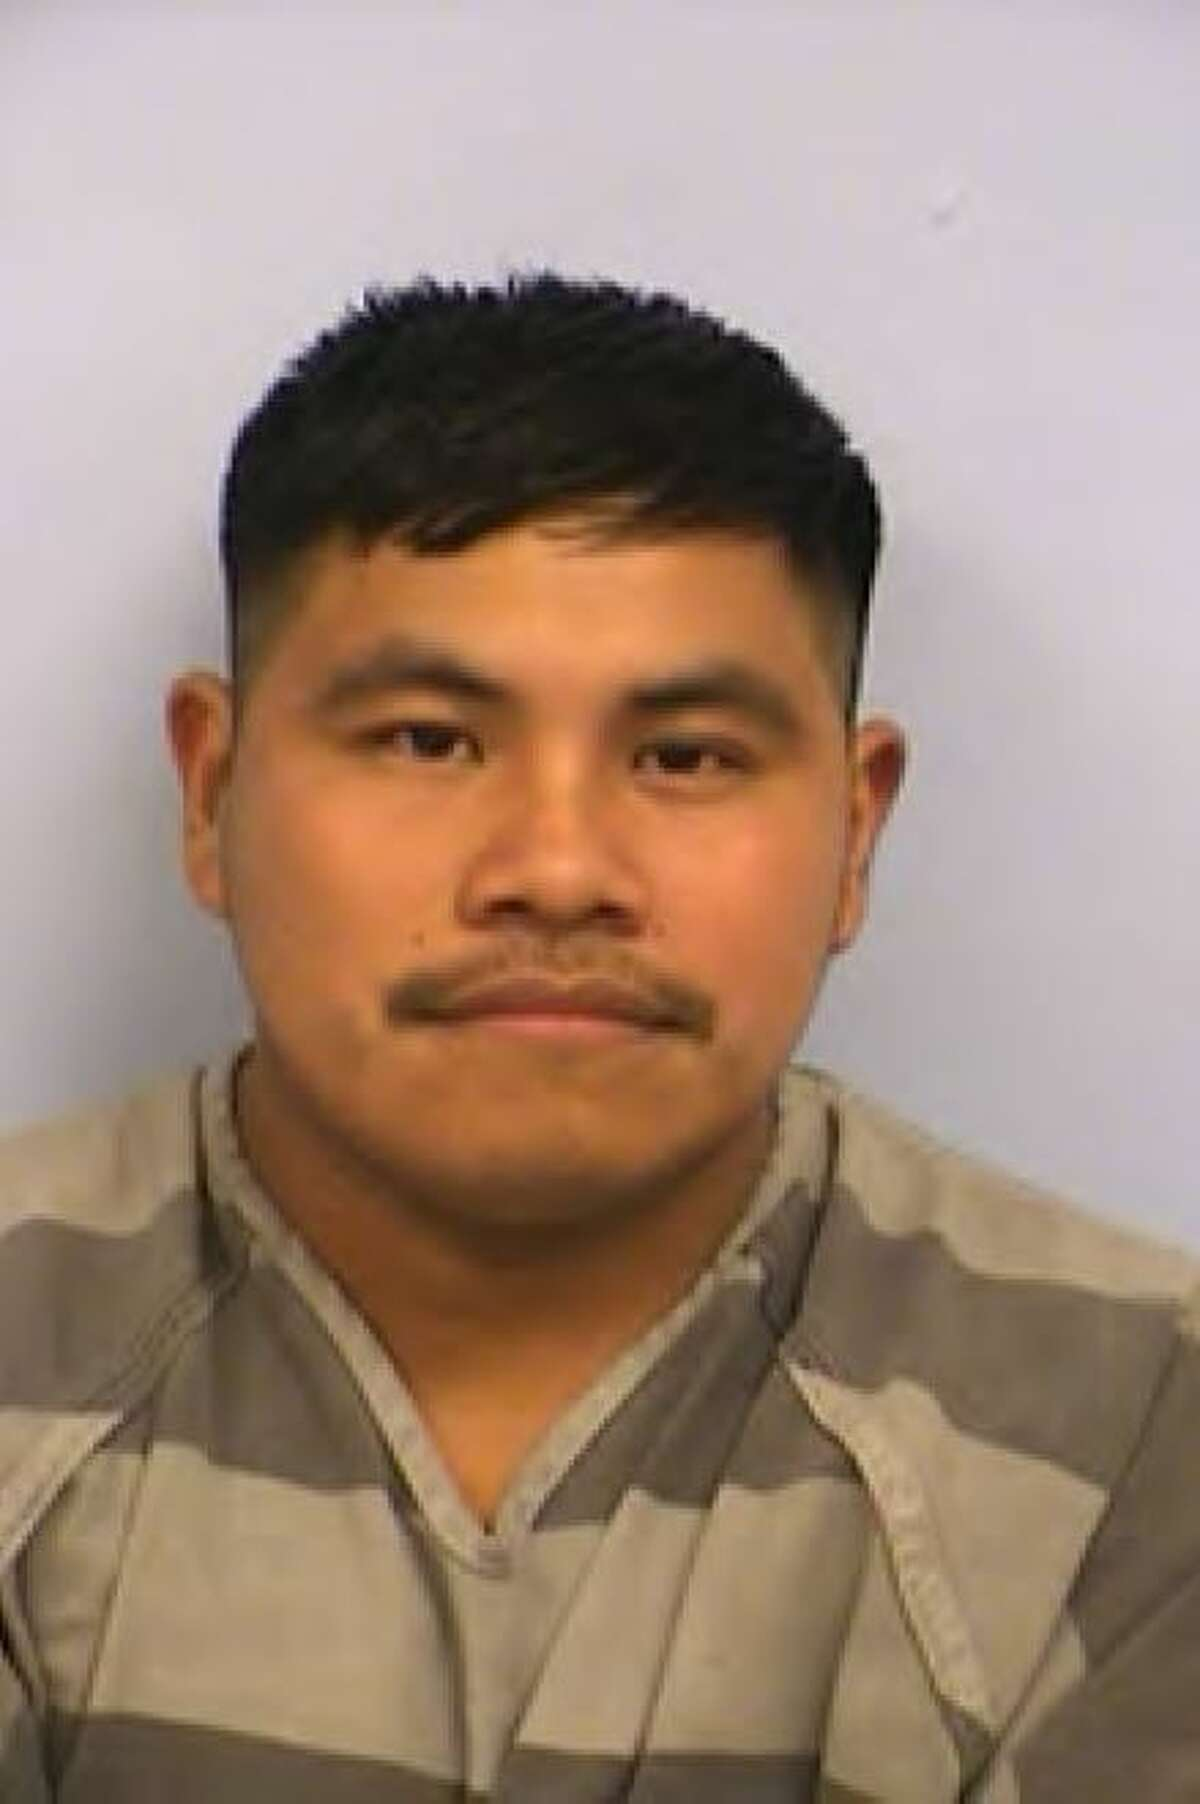 Edilberto Arias-Lopez was arrested on a Class B misdemeanor charge of prostitution for agreeing to purchase sexual services in exchange for money, according to the Austin Police Department.